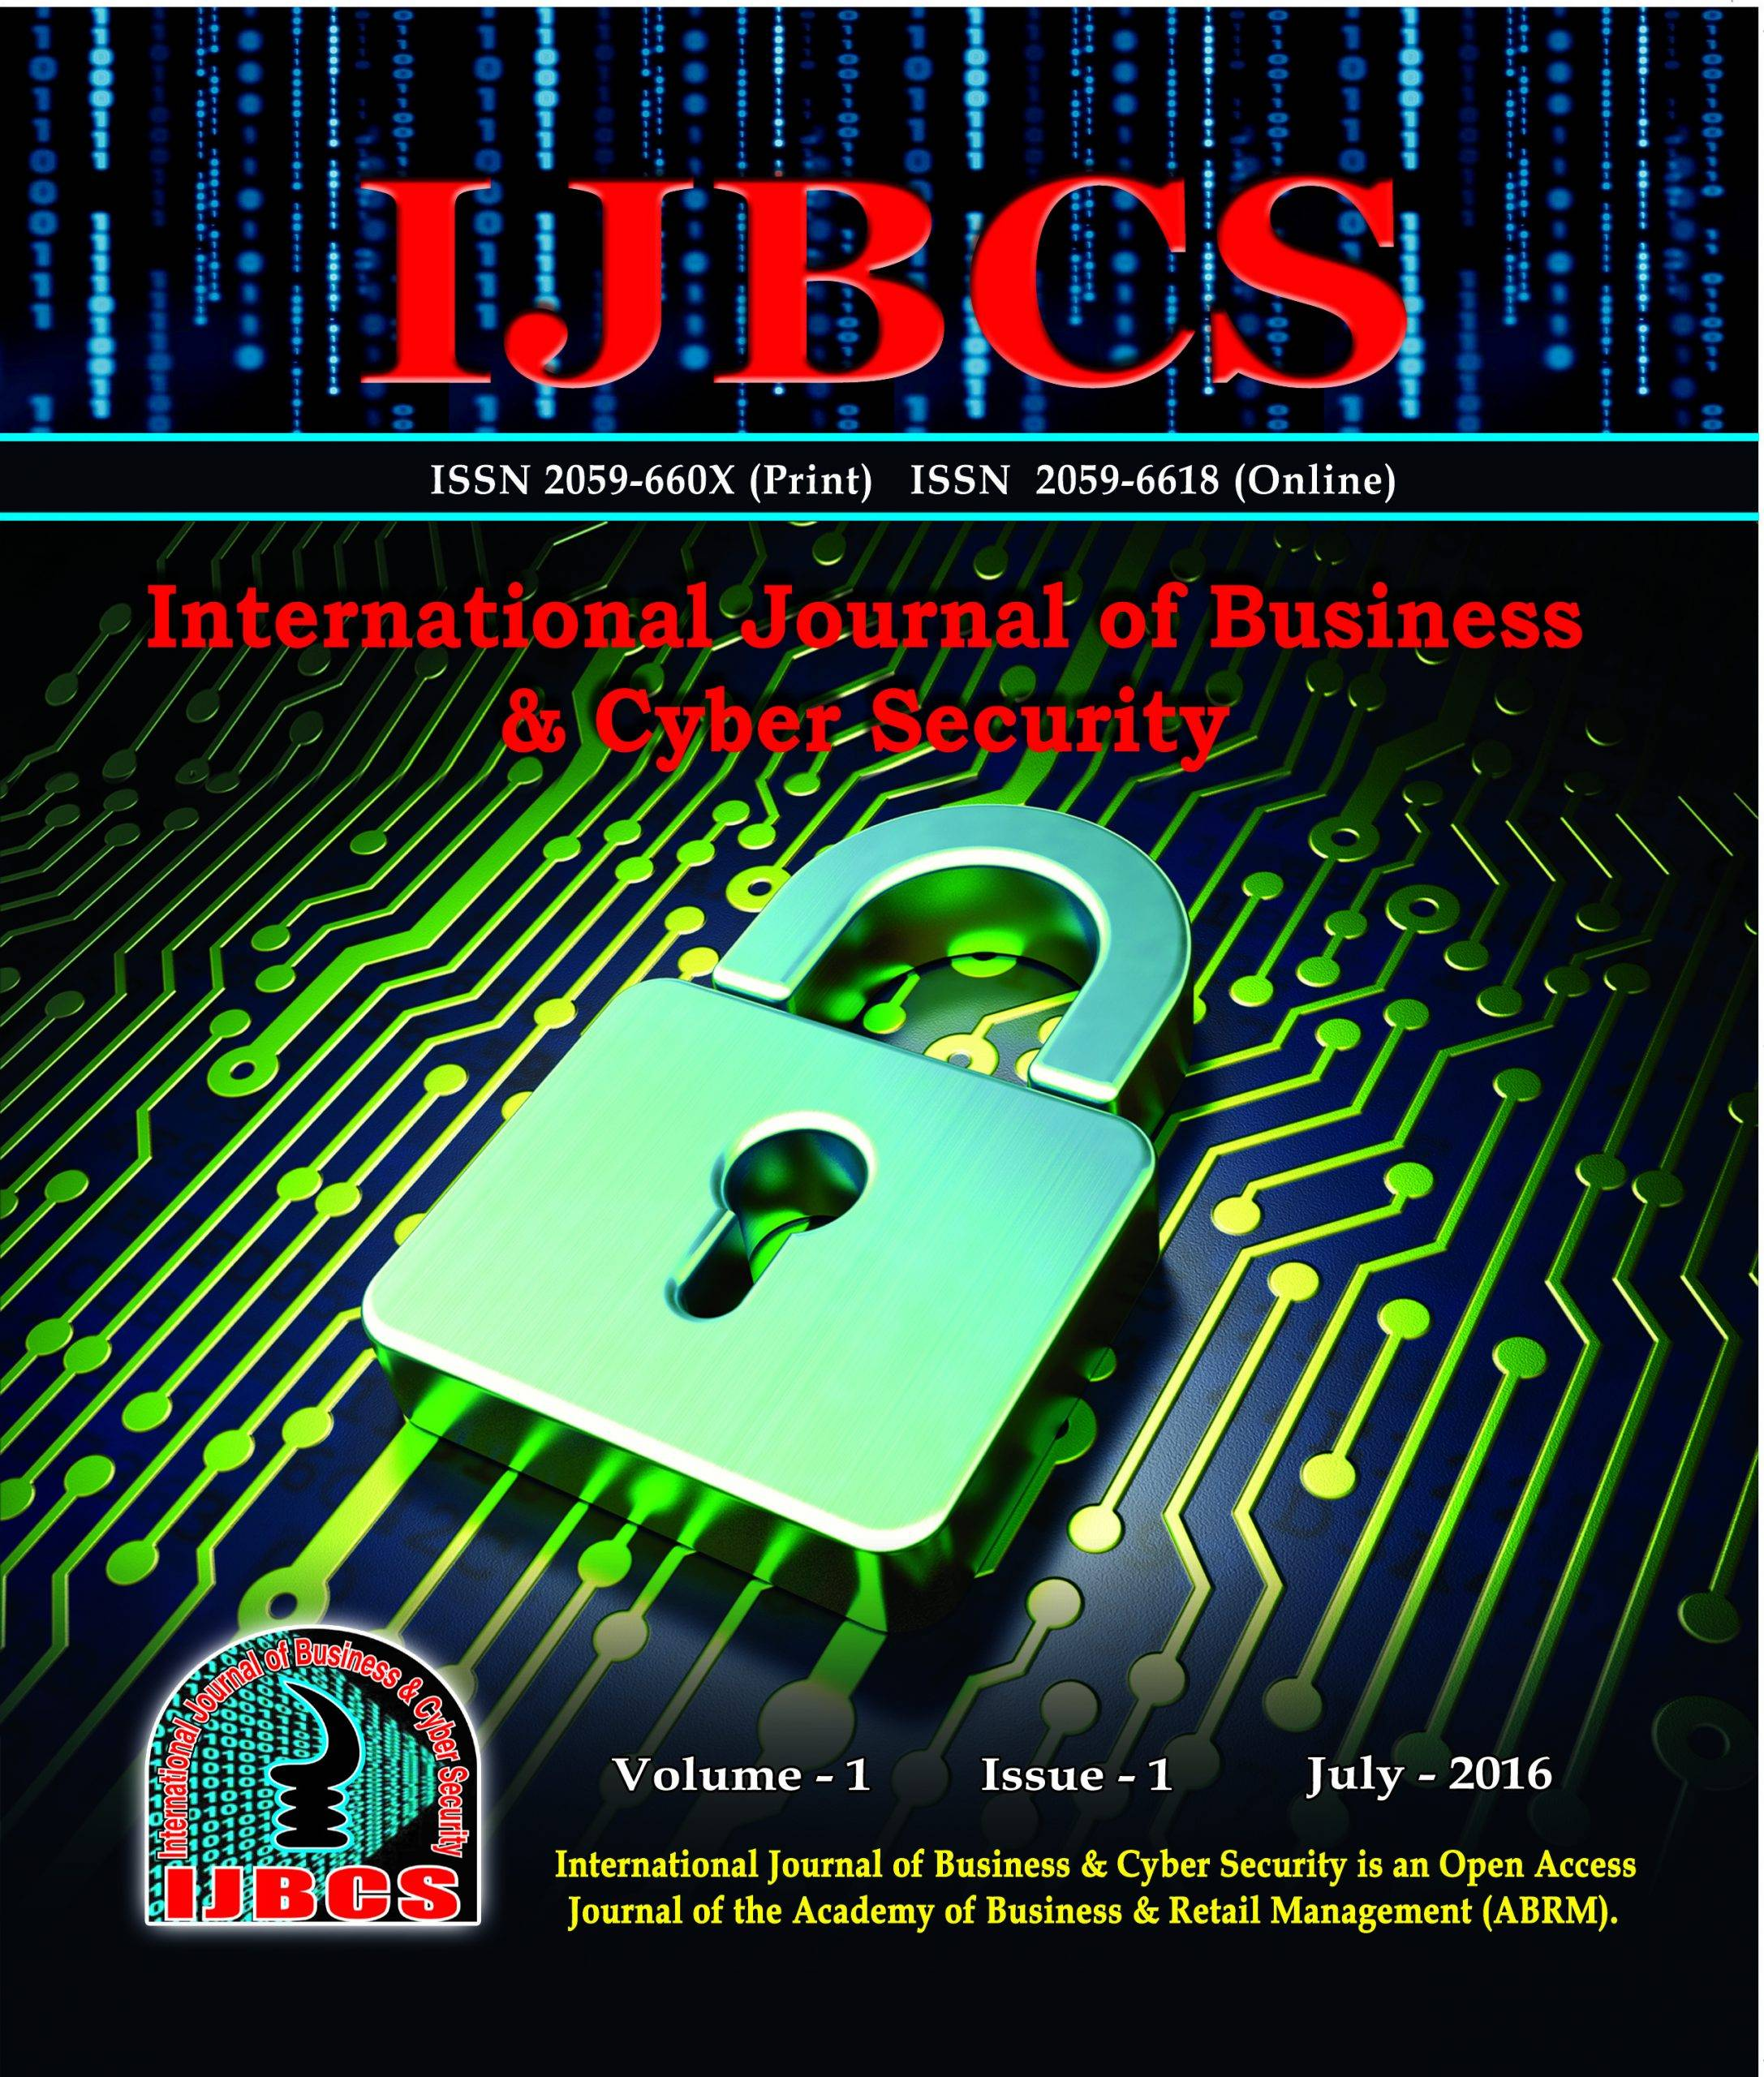 International Journal of Business & Cyber Security